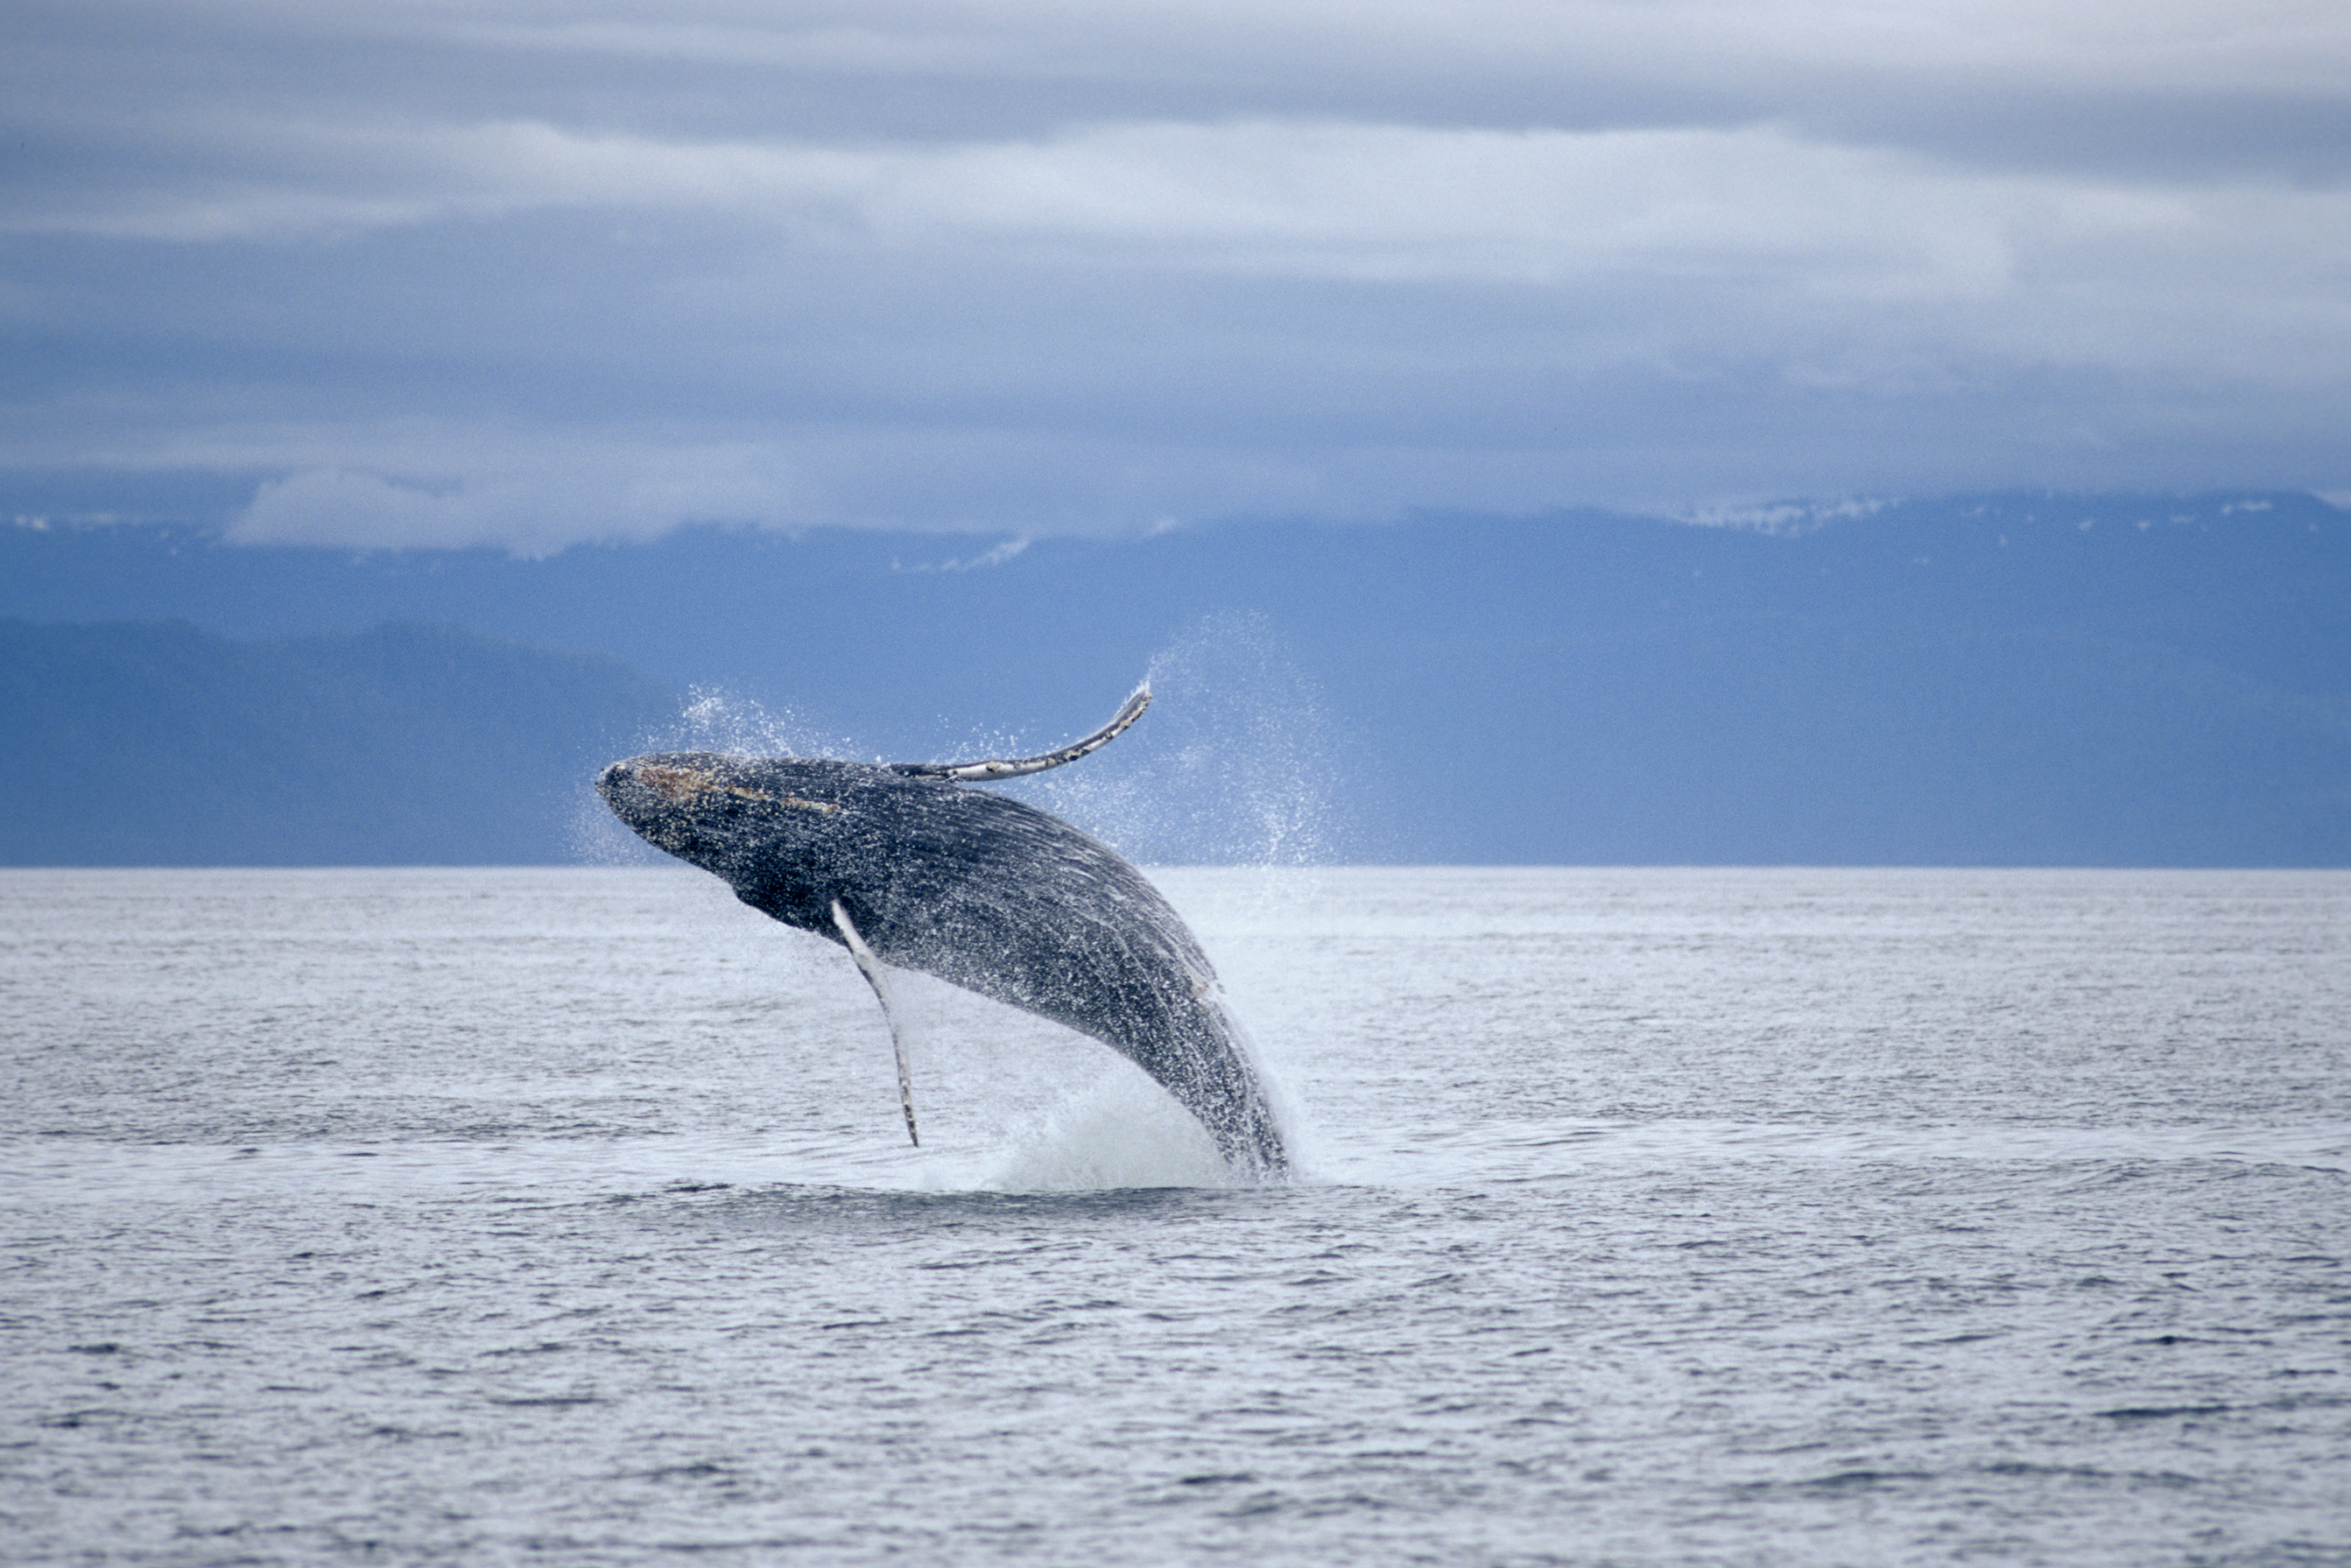 BC Nature to challenge Cabinet decision to approve Northern Gateway